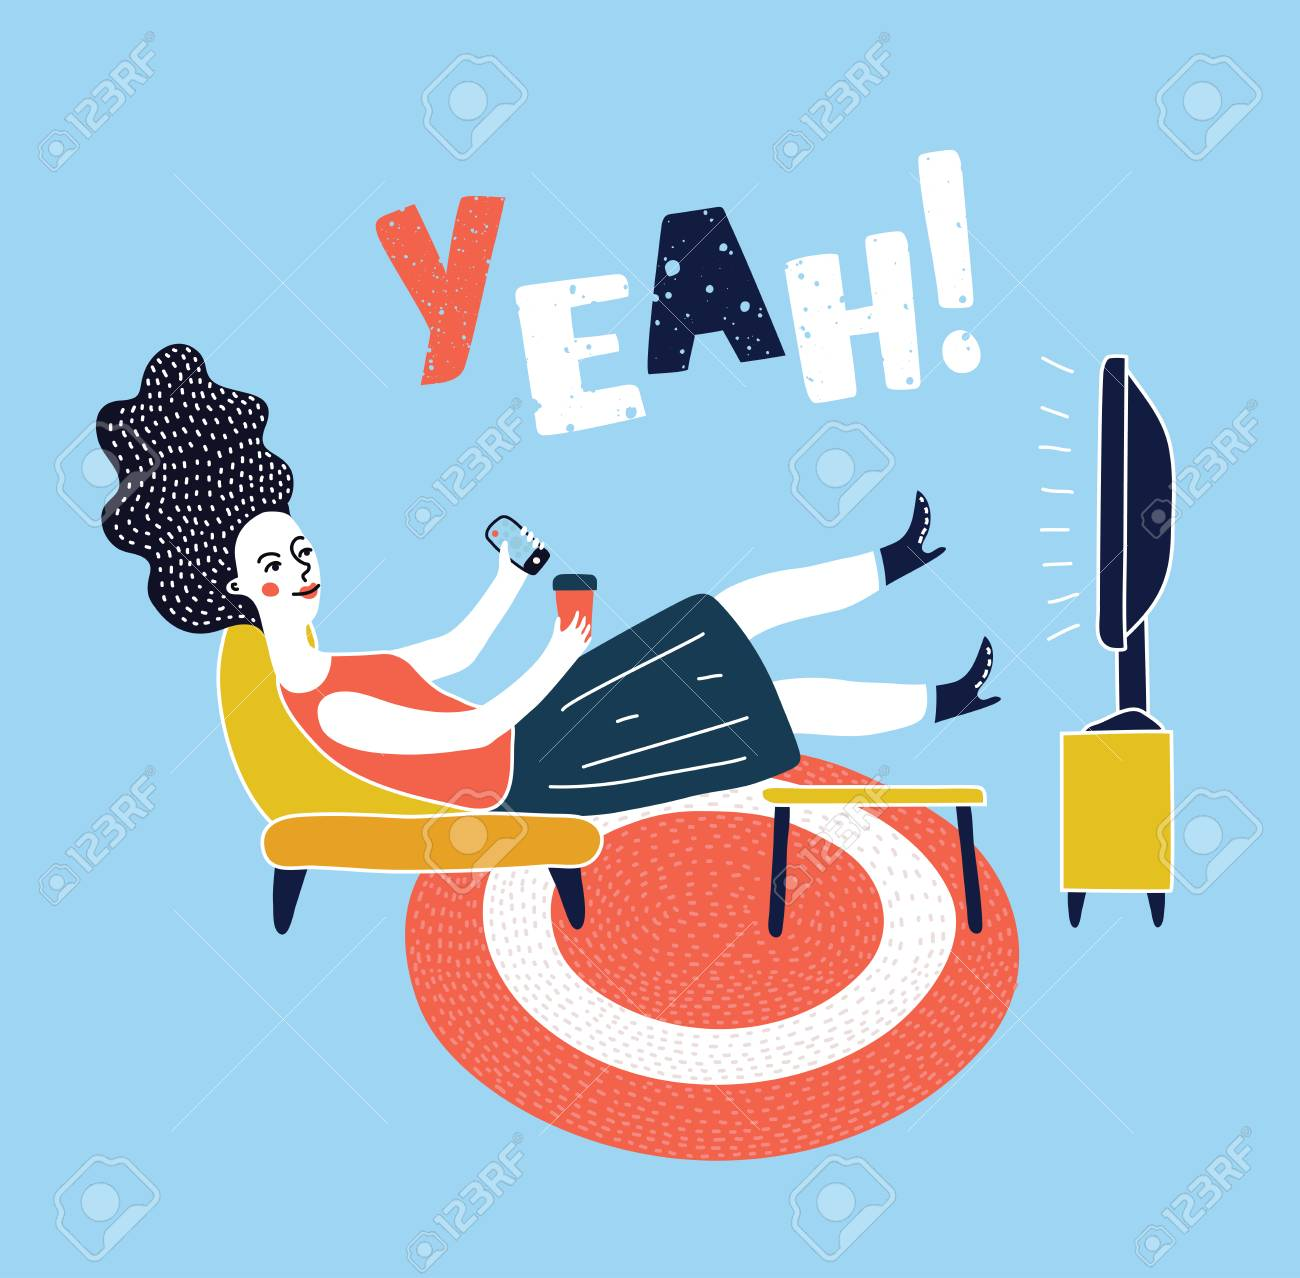 Vector cartoon illustration of woman watching television armchair and sitting in chair, drinking - 97393254